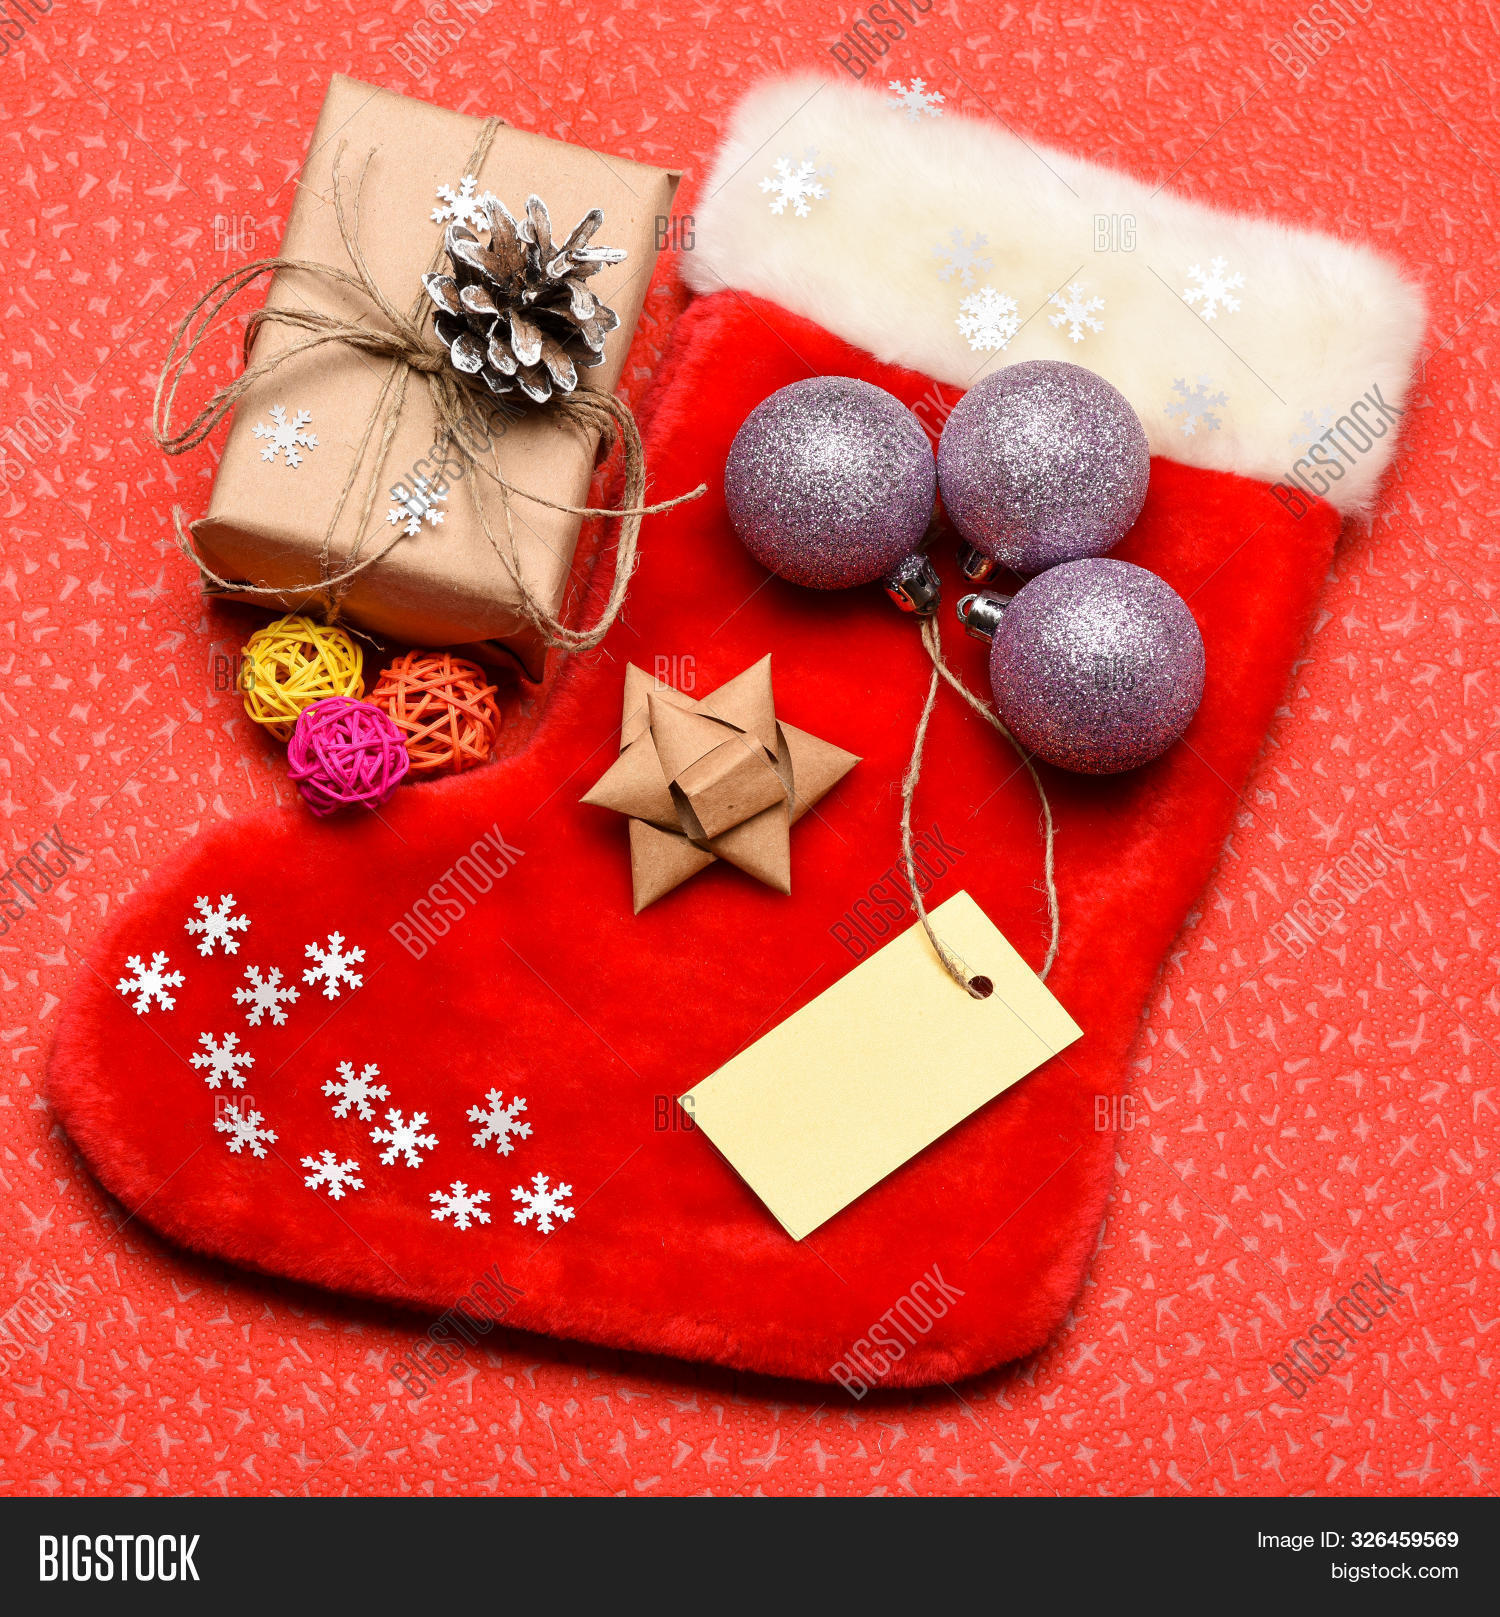 attribute,background,bag,ball,box,card,celebrate,celebration,christmas,decor,decorate,decorated,decoration,family,festive,gift,holiday,idea,keep,new,ornament,package,paper,red,sale,santa,season,shaped,shopping,sock,stocking,stuffers,tag,top,tradition,traditional,view,wood,xmas,year